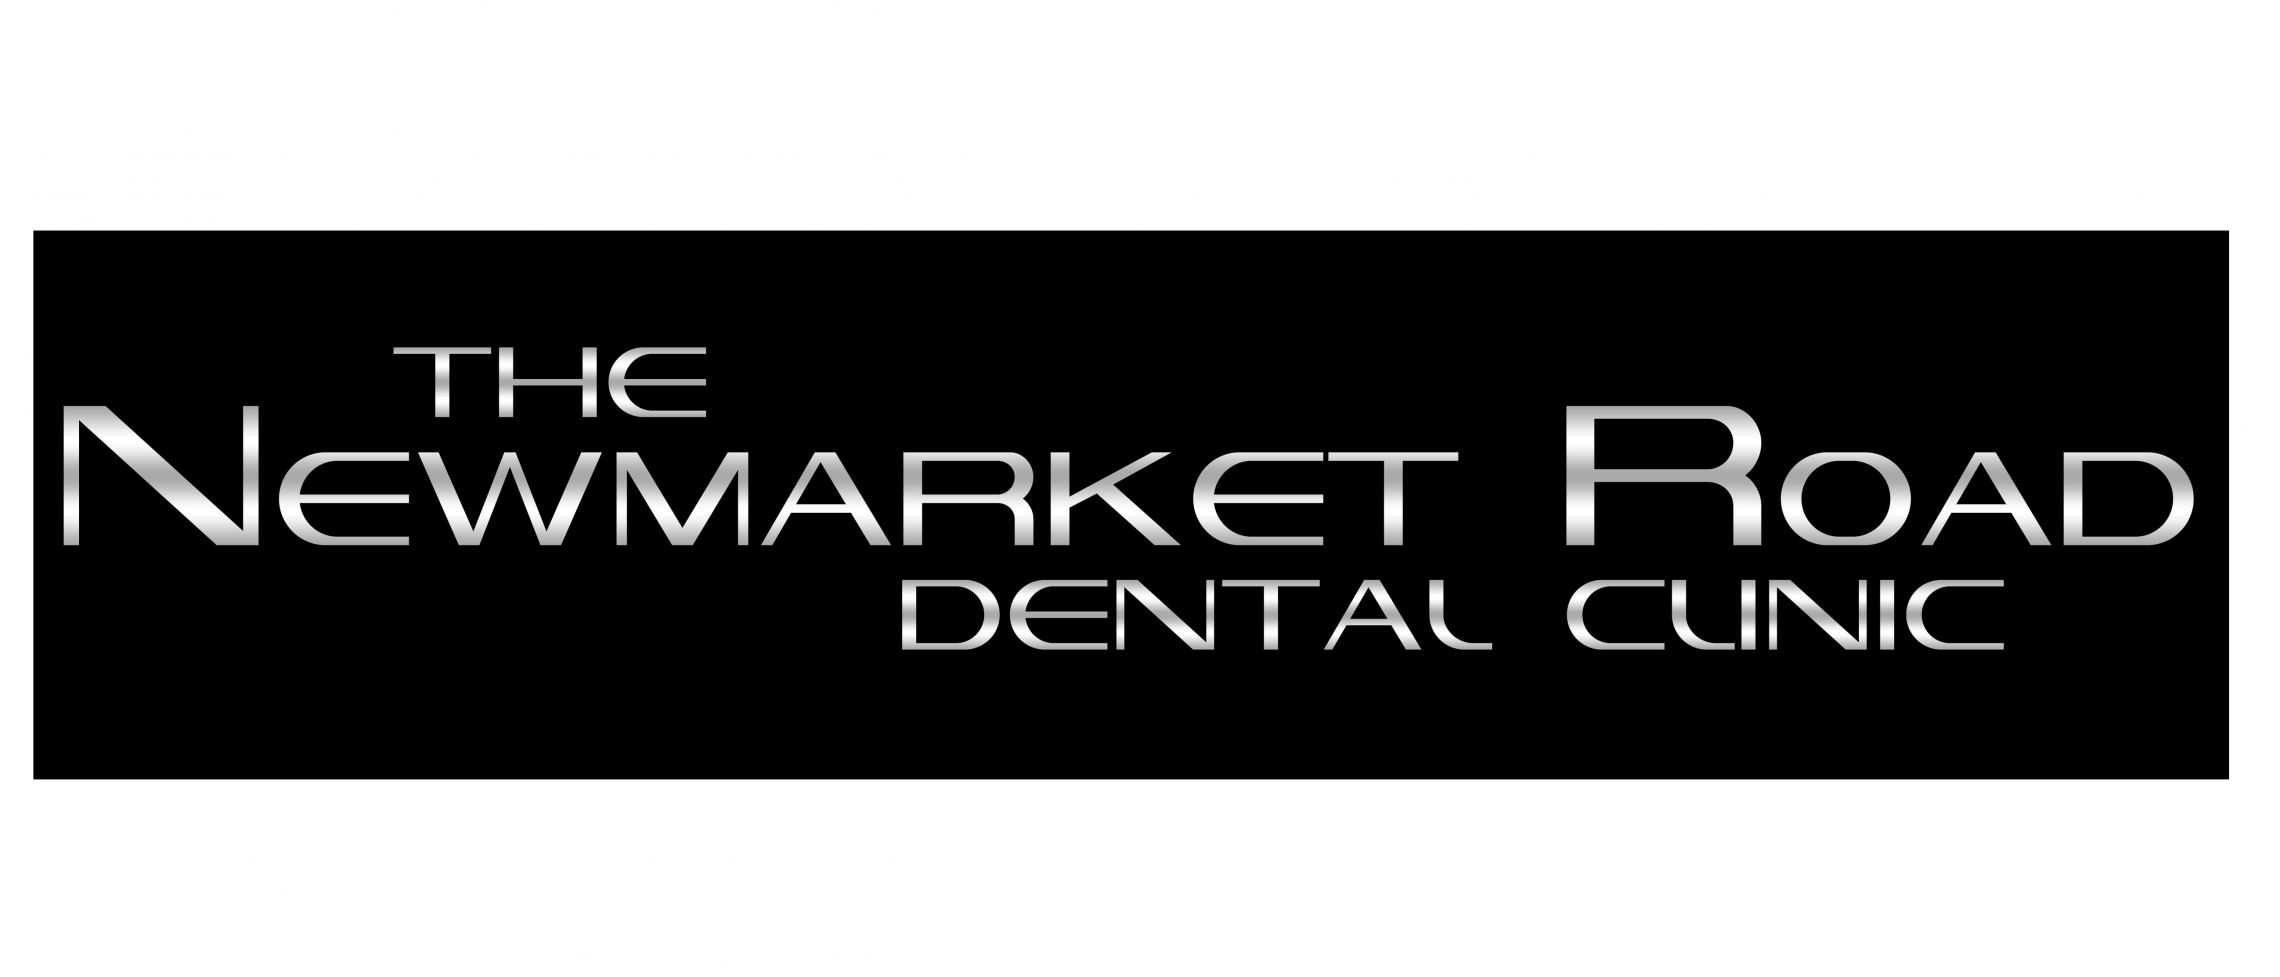 The Newmarket Road Dental Clinic - The MiSmile Network